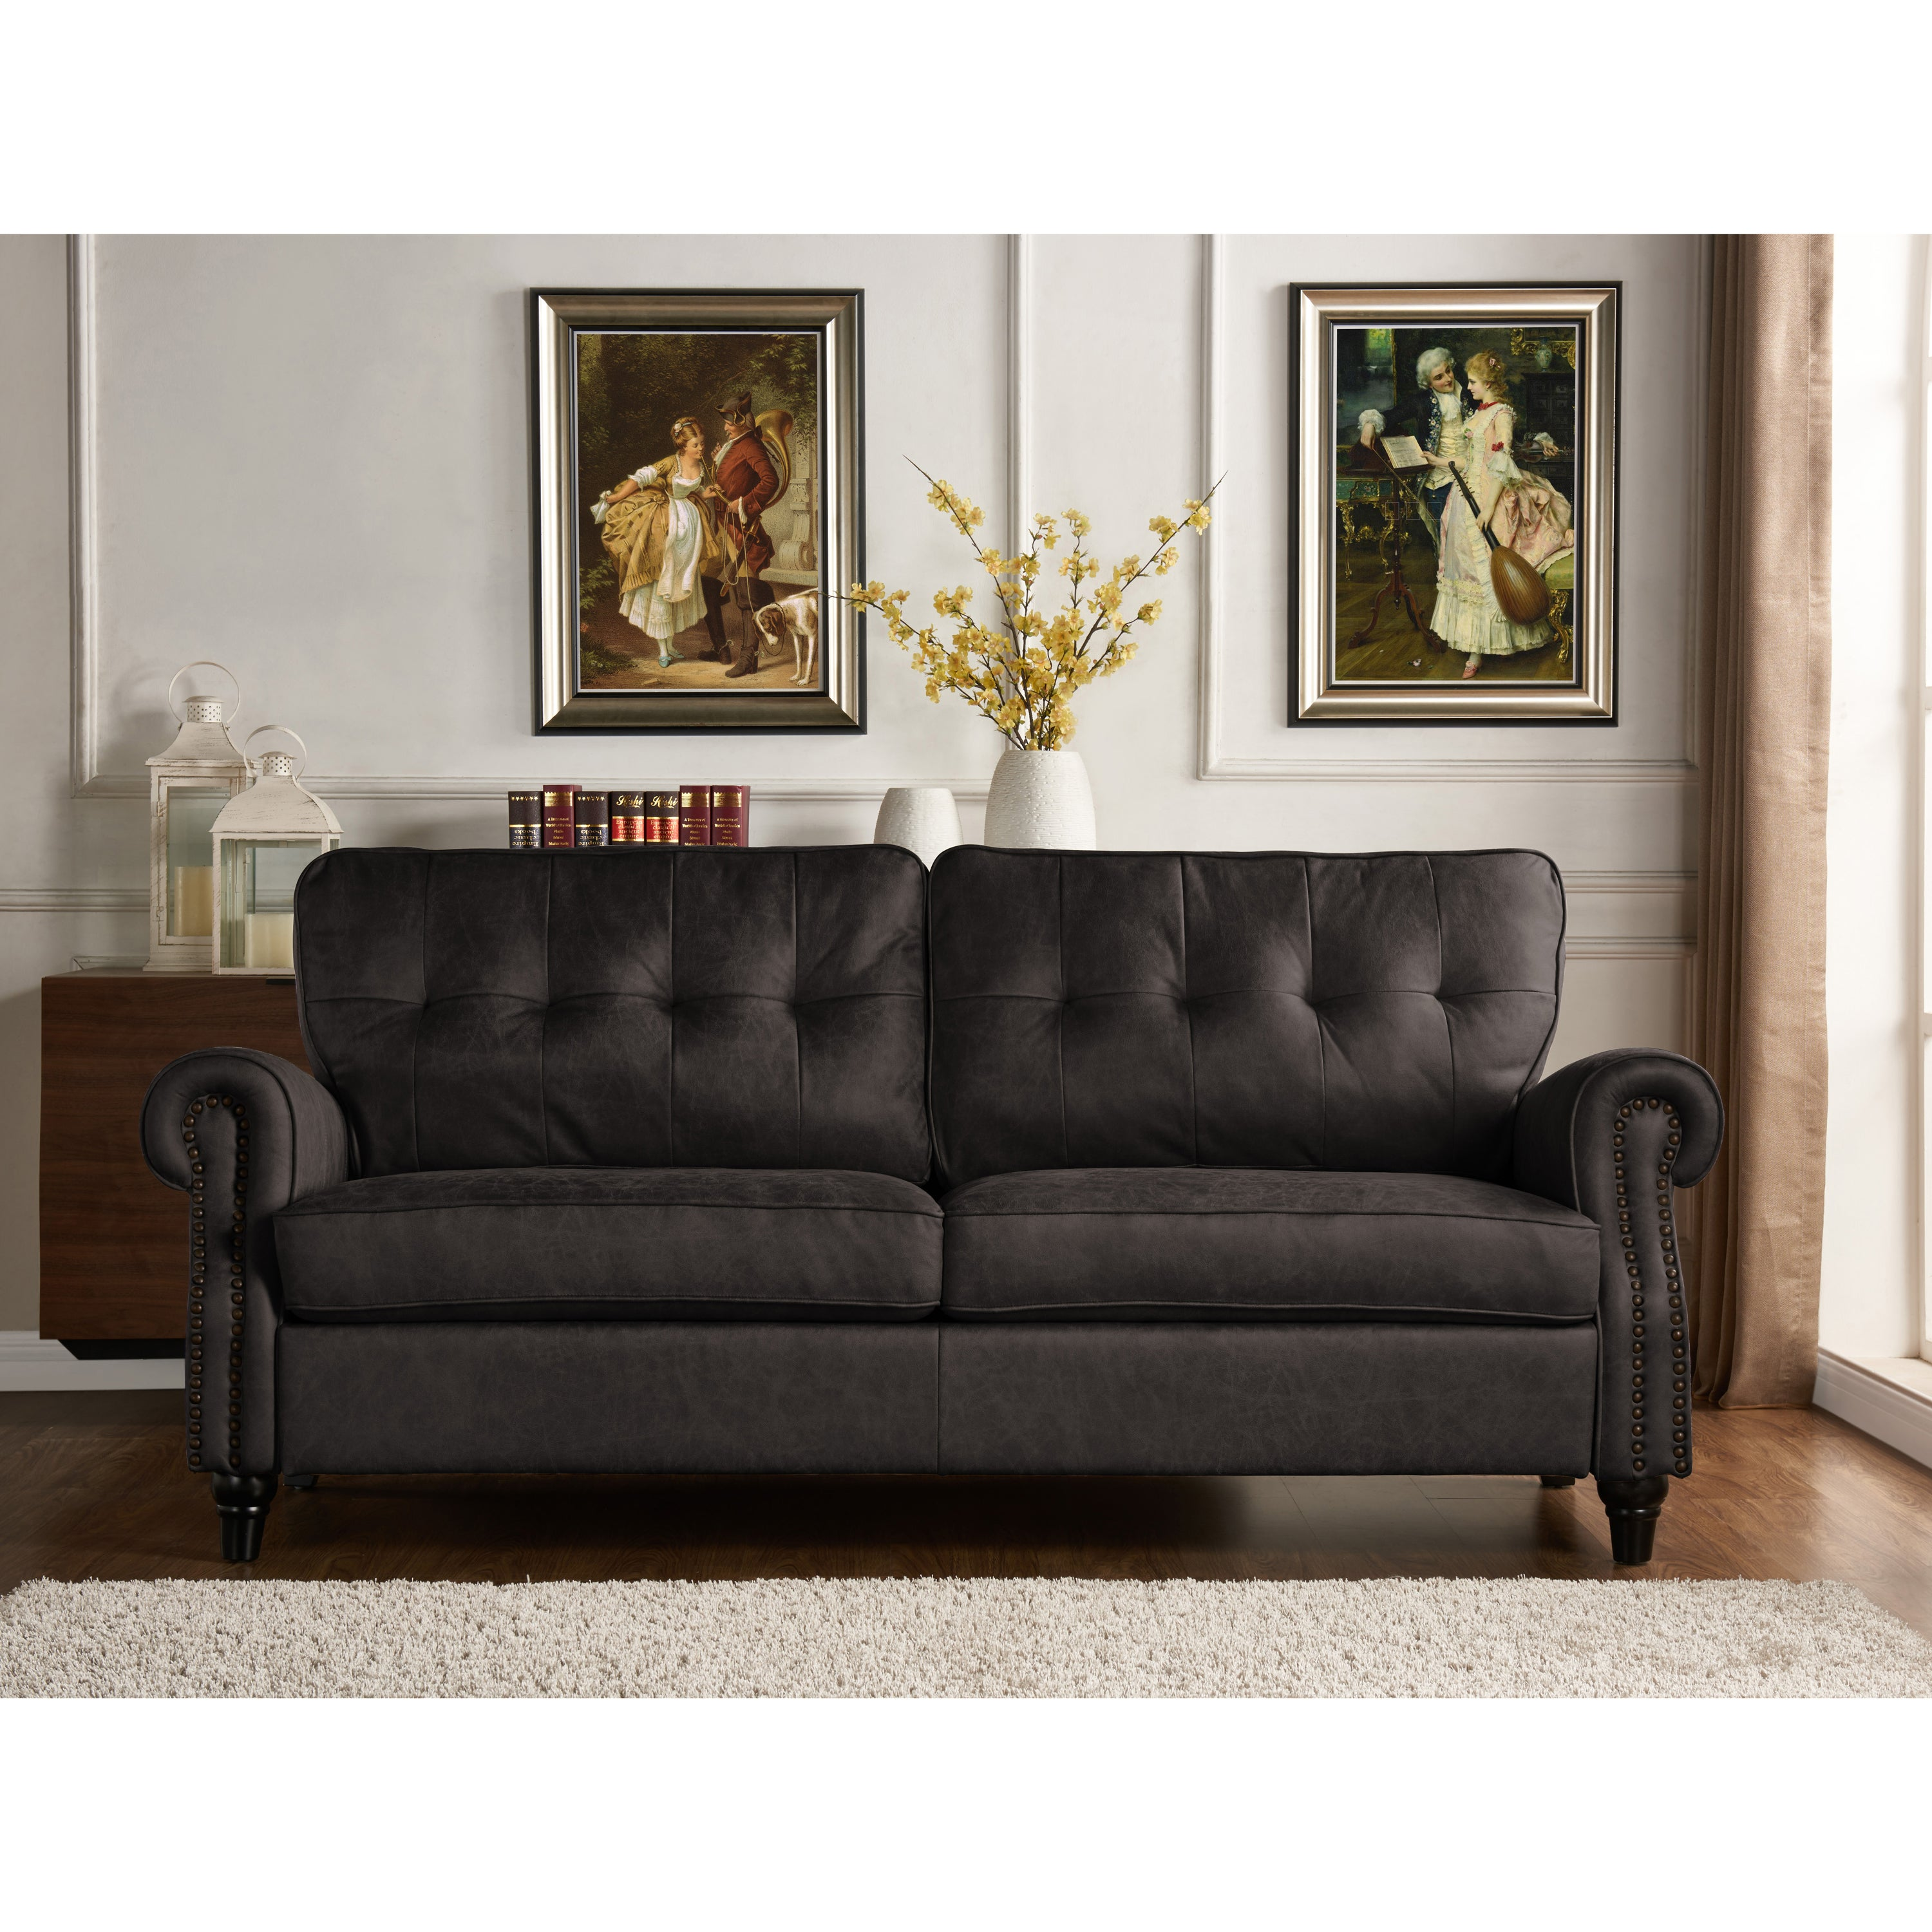 Handy Living Victoria Sofast Sofa In Grey Distressed Faux Leather Free Shipping Today 17520749